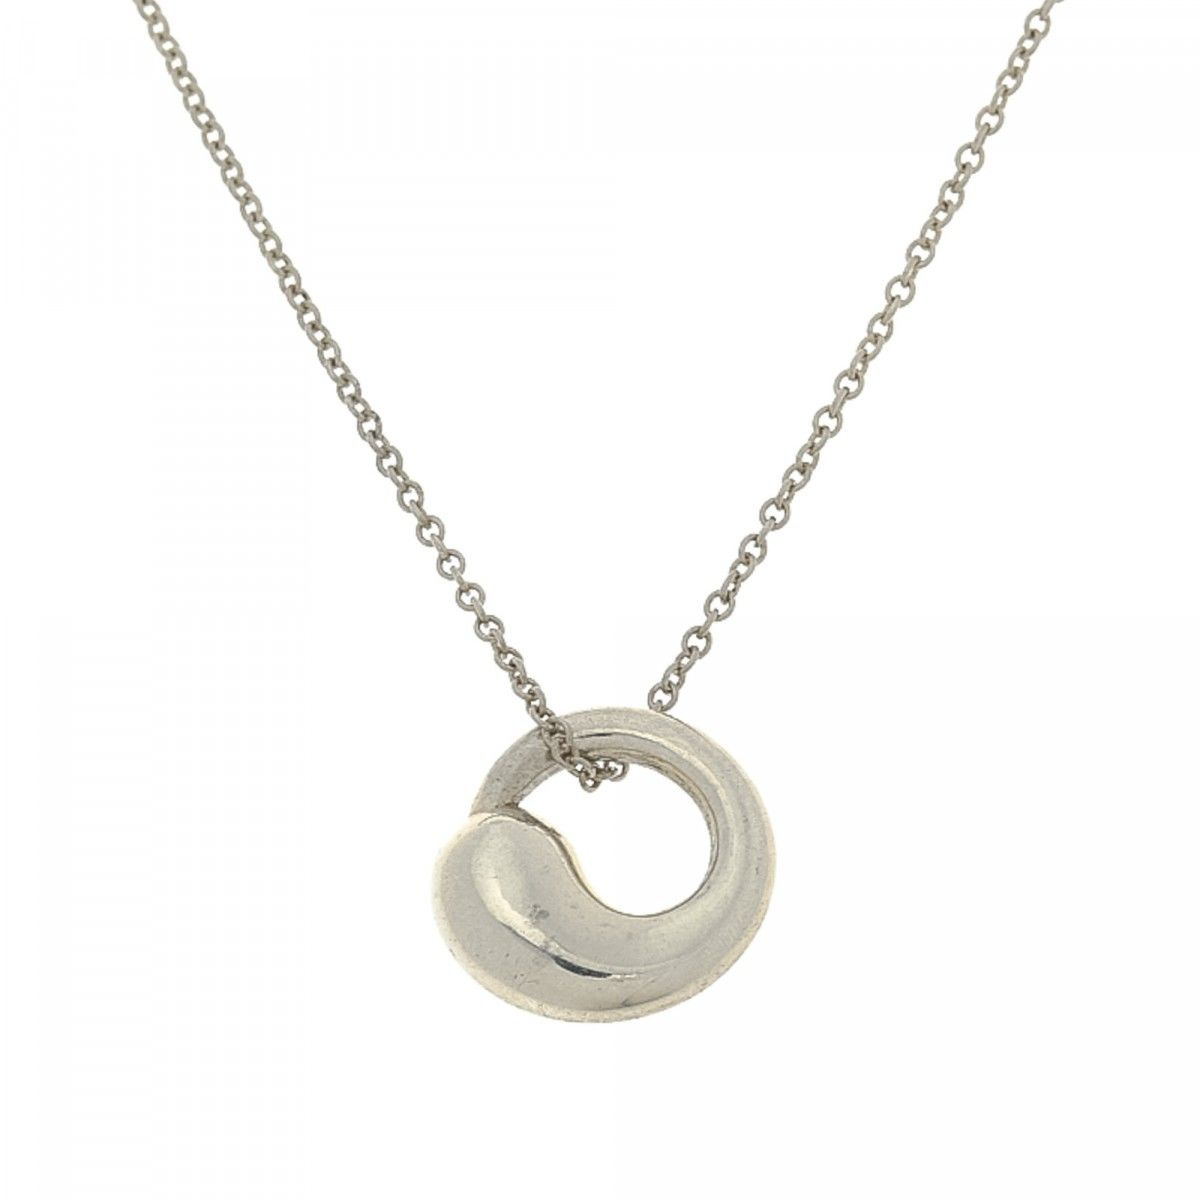 Tiffany elsa peretti eternal circle pendant necklace 425cm 925 tiffany elsa peretti eternal circle pendant necklace 425cm 925 silver lxrandco pre owned luxury vintage mozeypictures Image collections